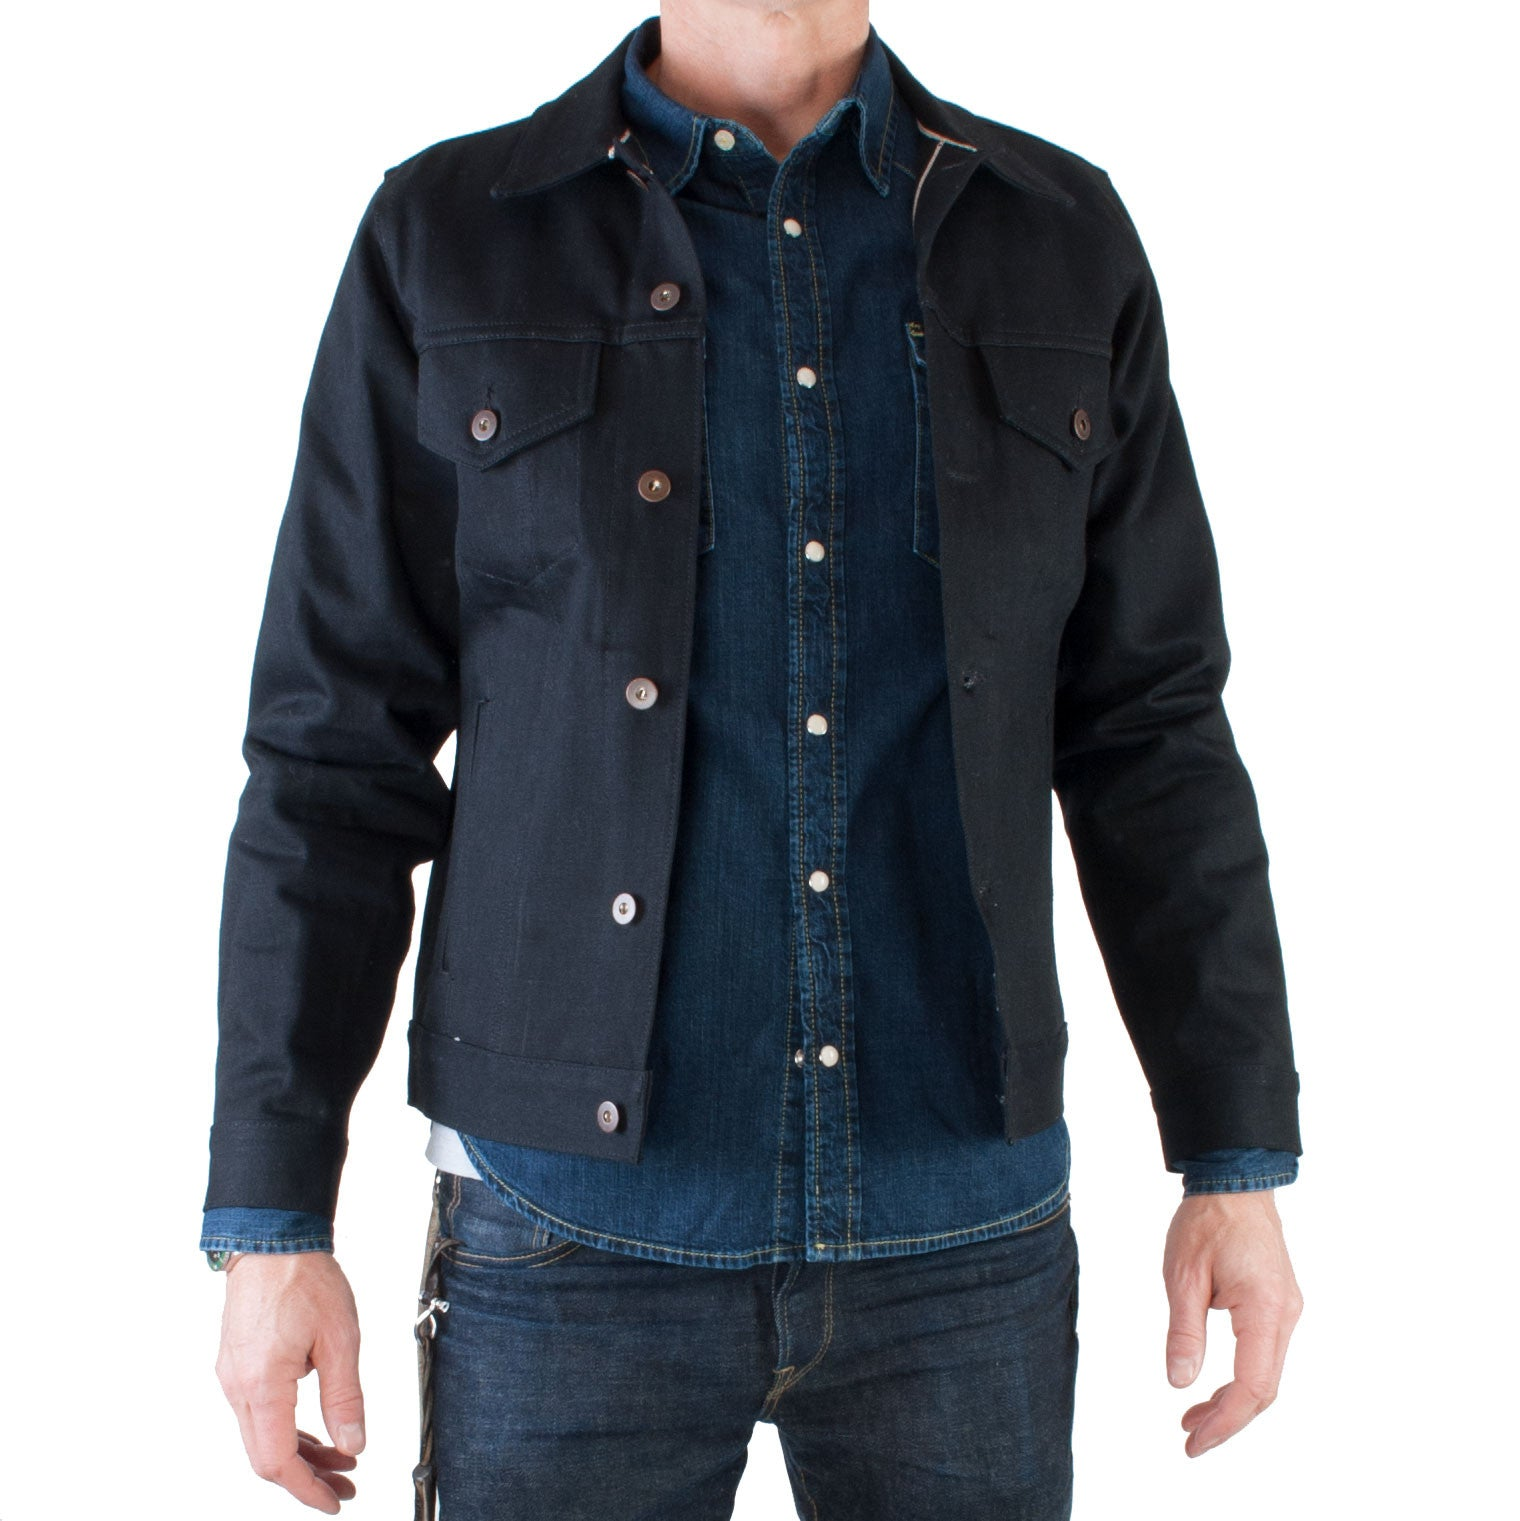 Tellason - Japanese Selvage Denim Jacket, 13.5 oz (Black) - Brund - 1